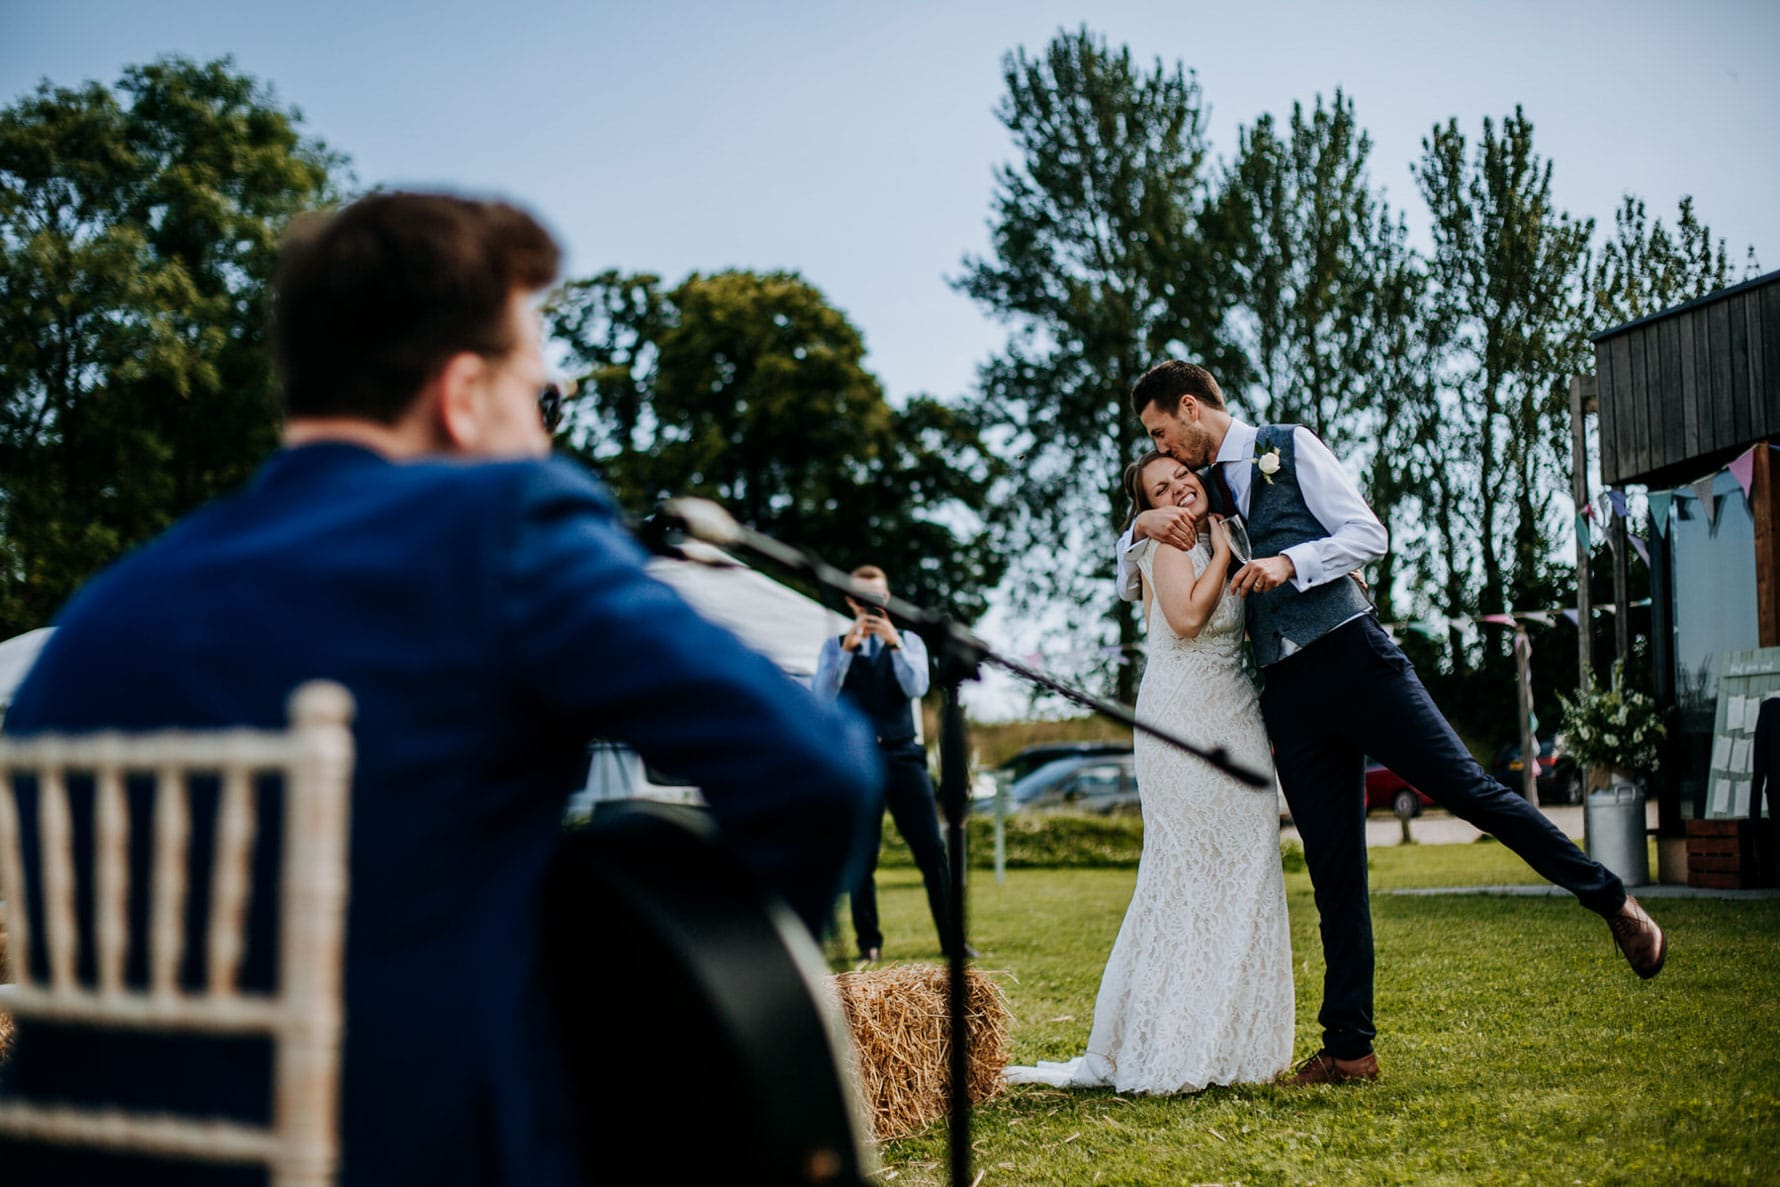 Bride and groom laughing in front of a band